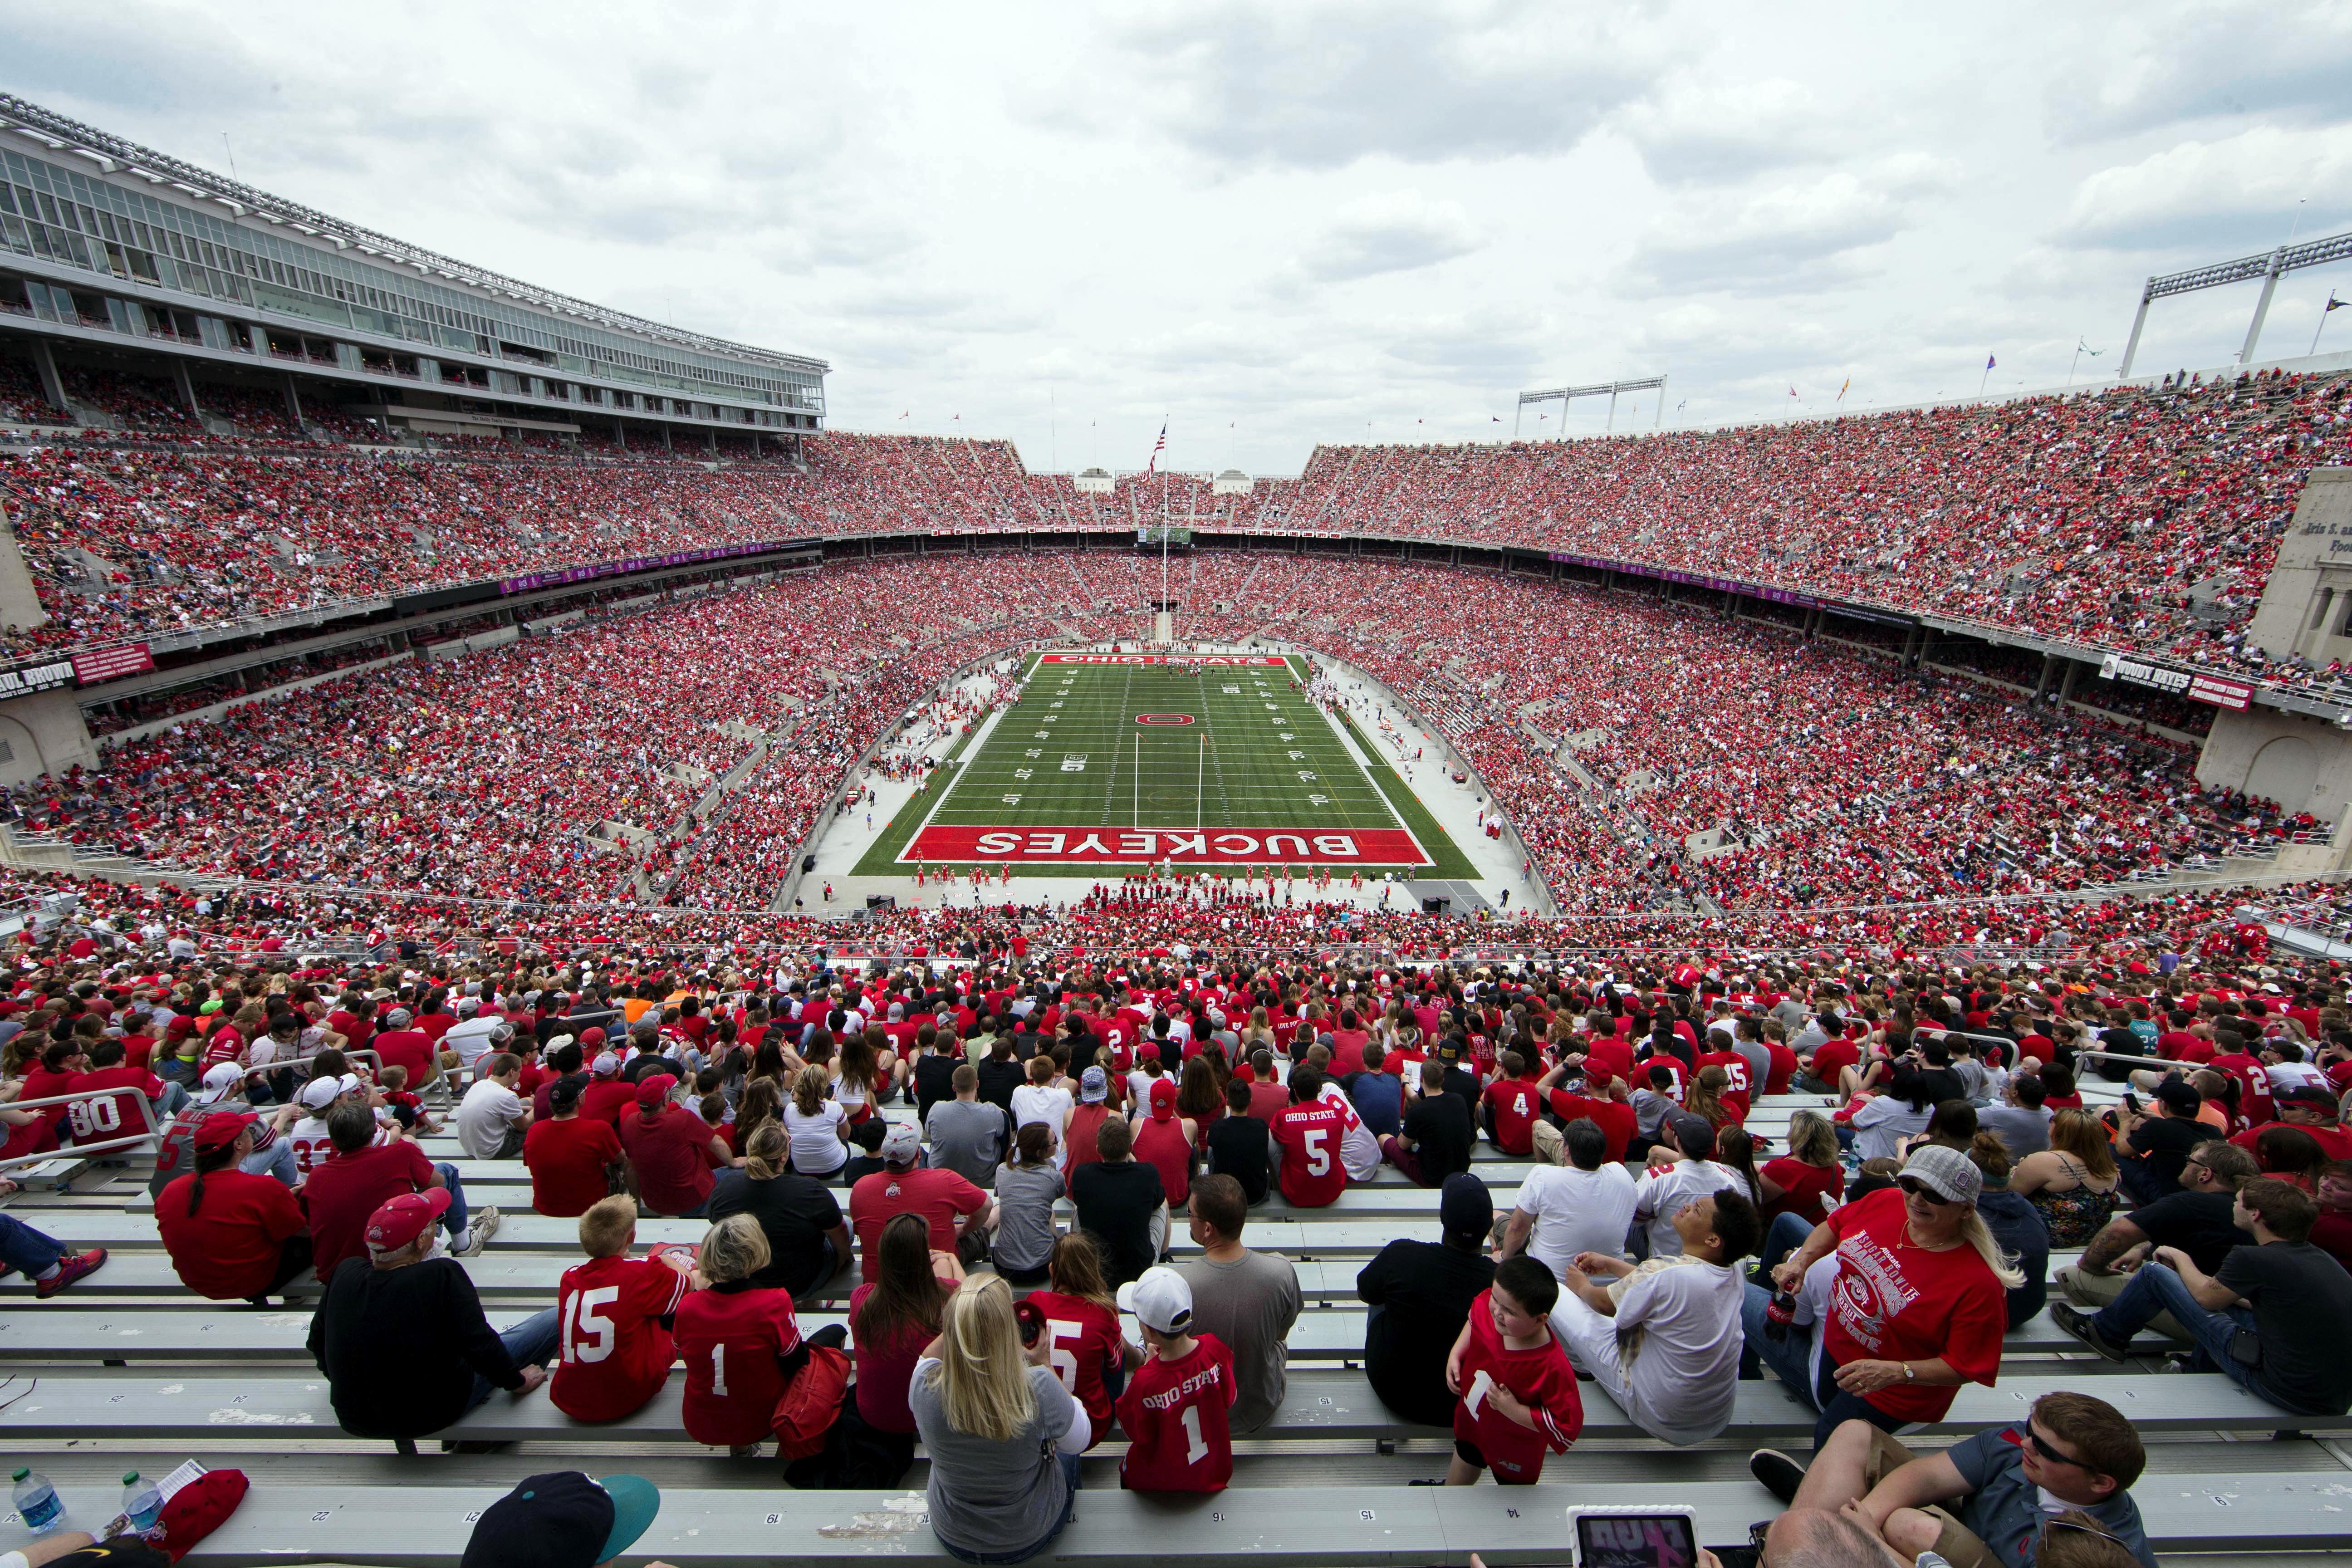 2015 spring game attendance standings: Ohio State sets record, Big Ten dominates